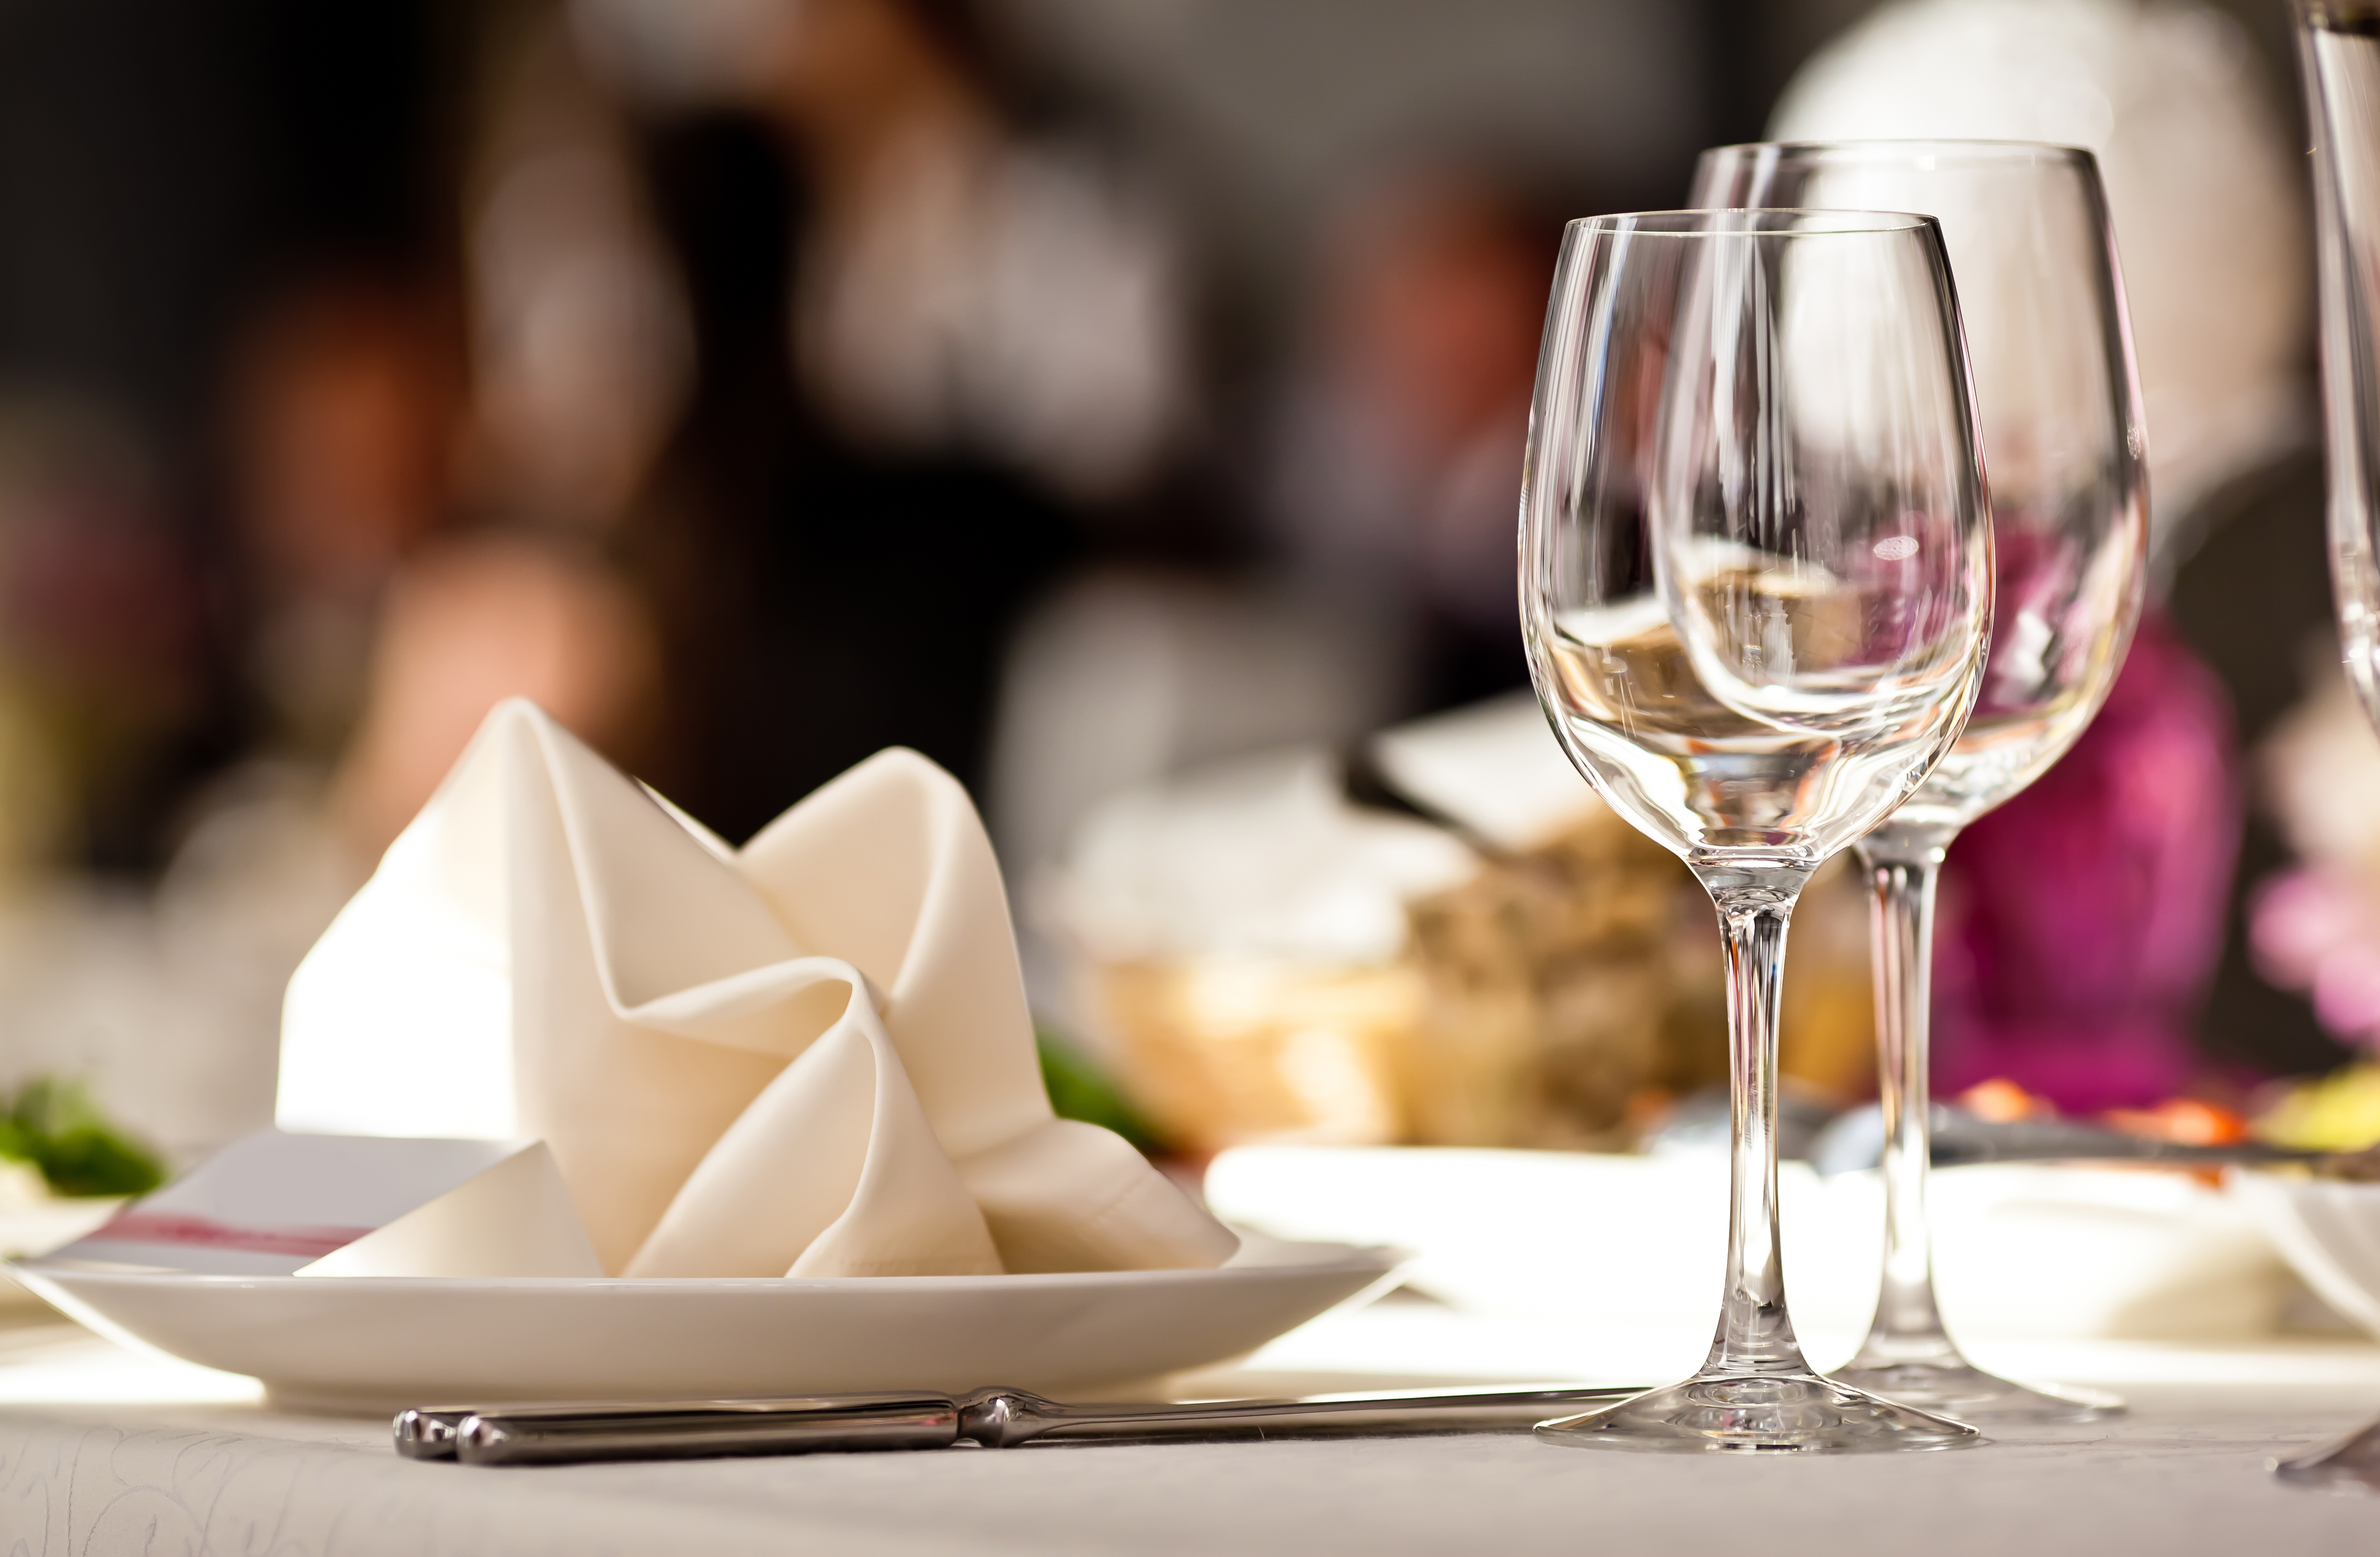 Two wine glasses next to a plate with a napkin on top at a restaurant.